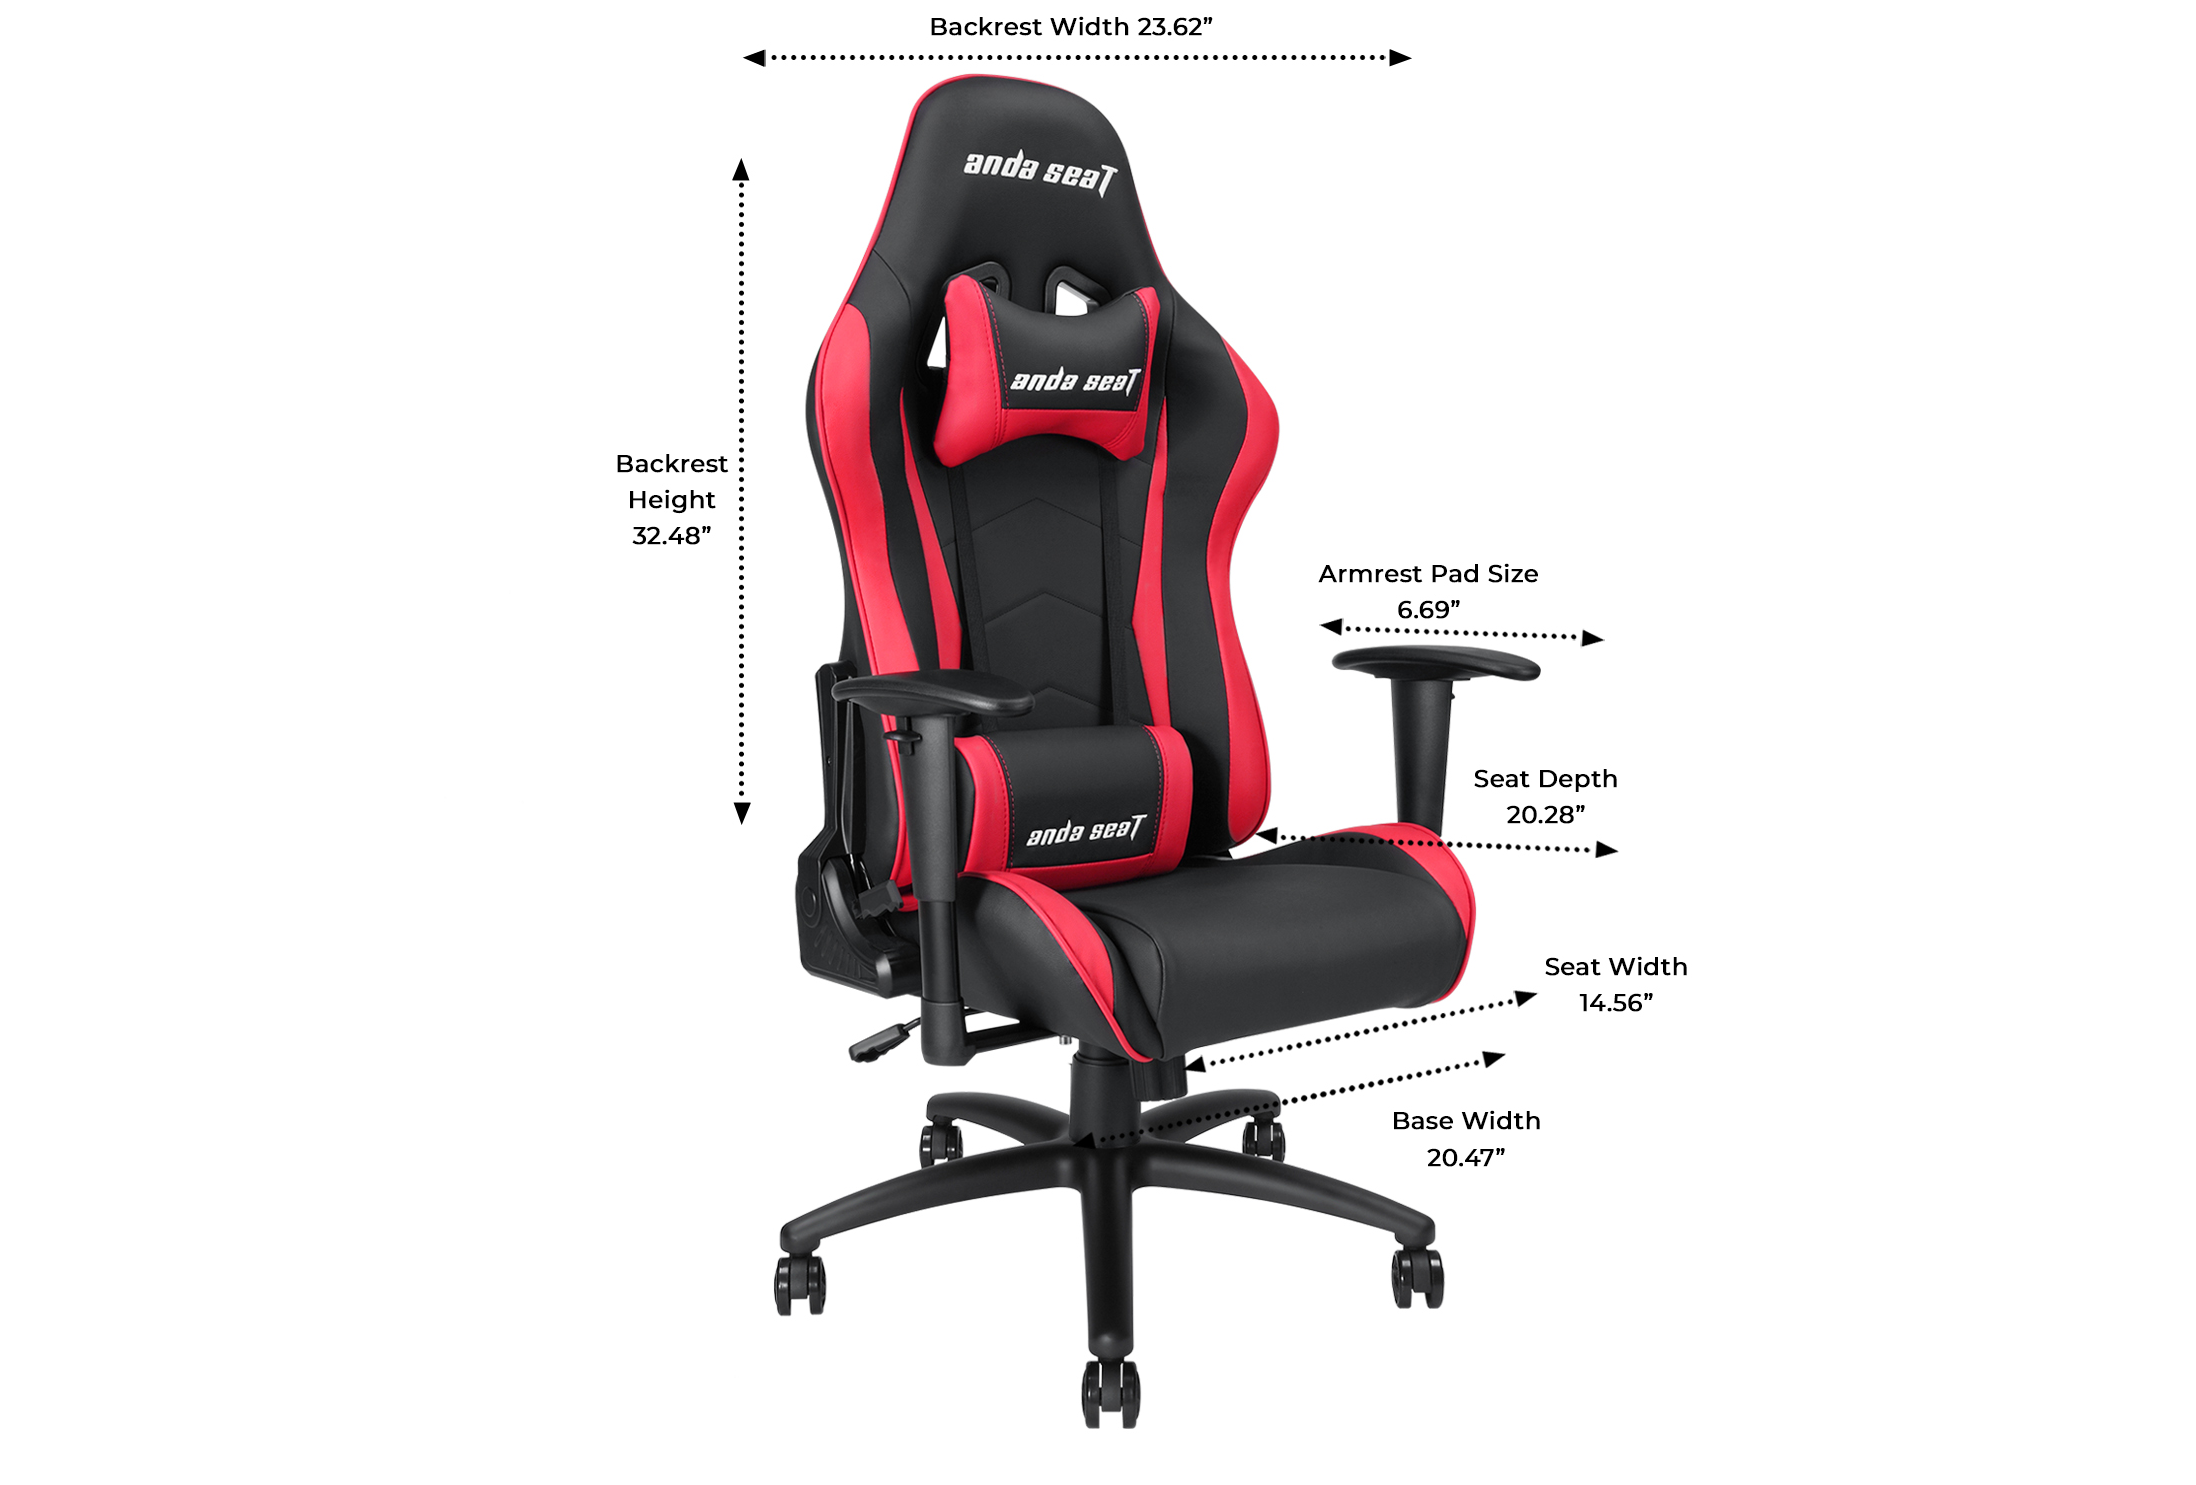 Axe gaming chair dimension